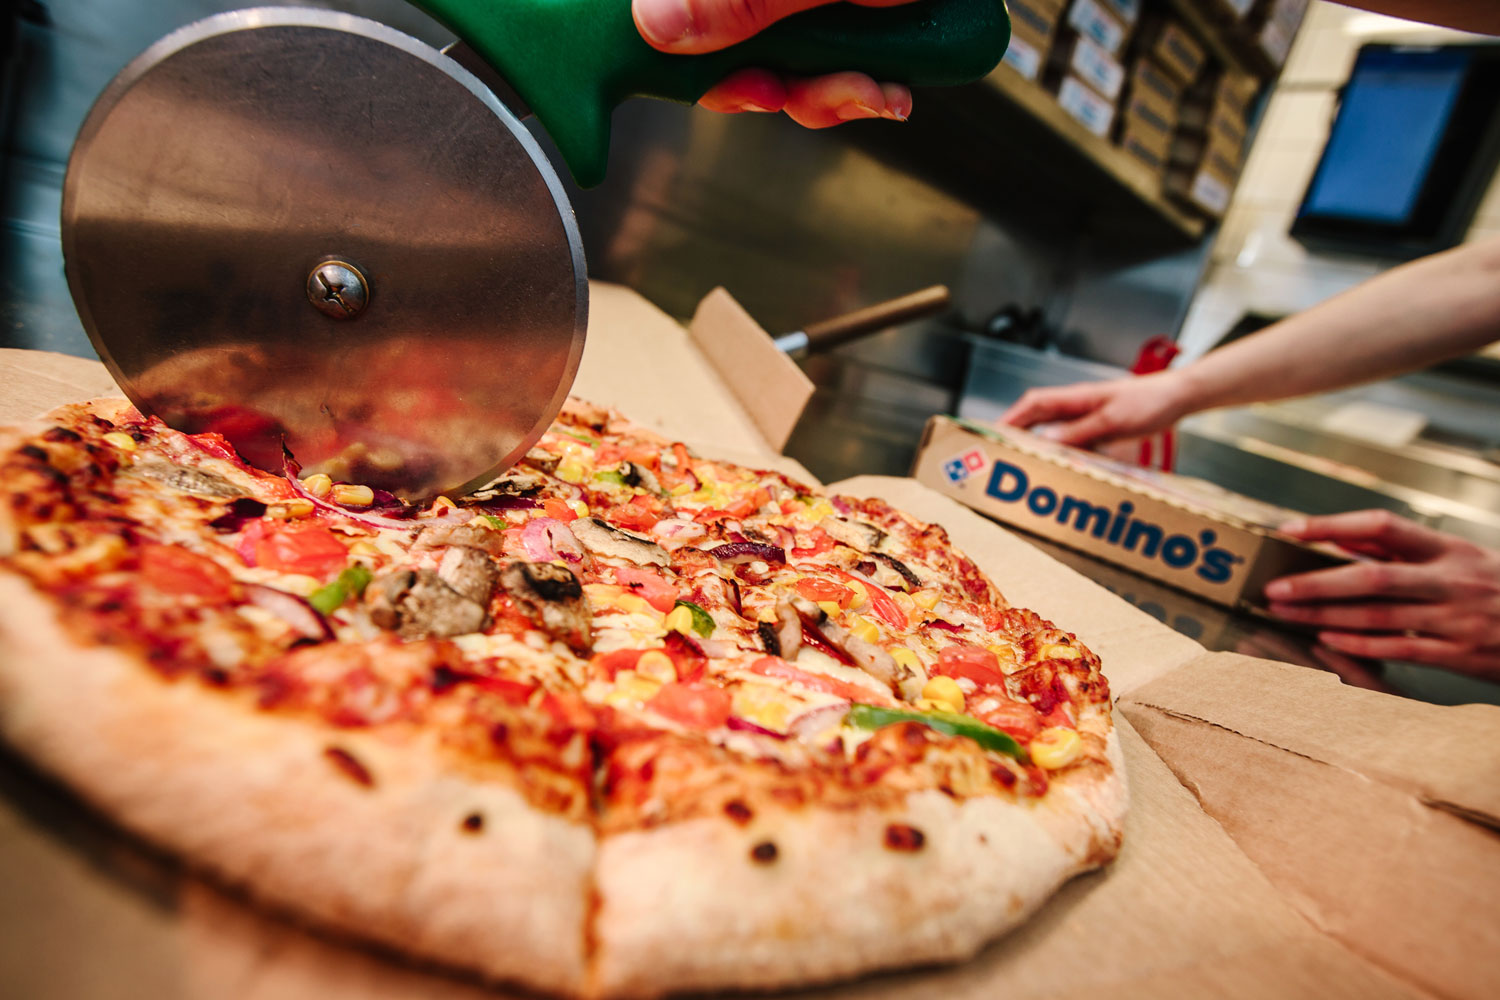 Domino's Appoints VCCP as Lead Creative and Strategic Agency